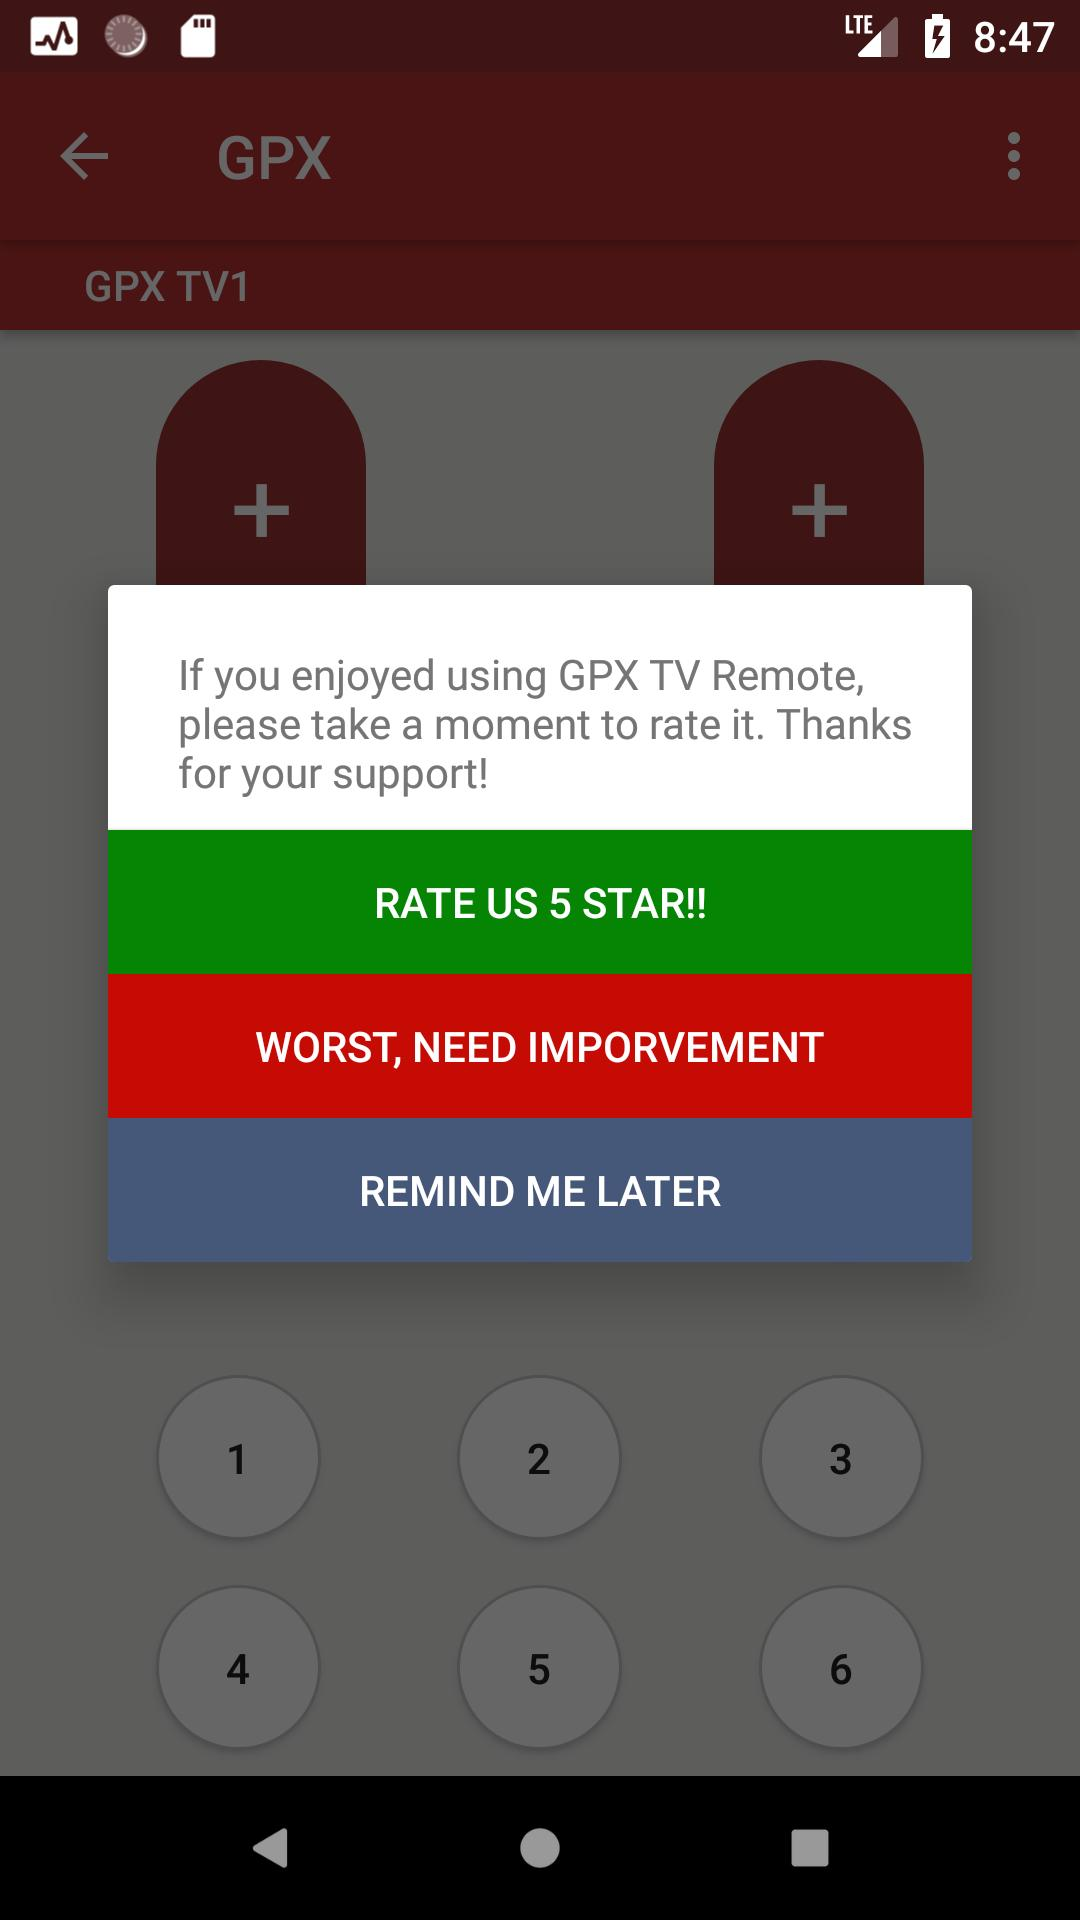 GPX TV Remote for Android - APK Download